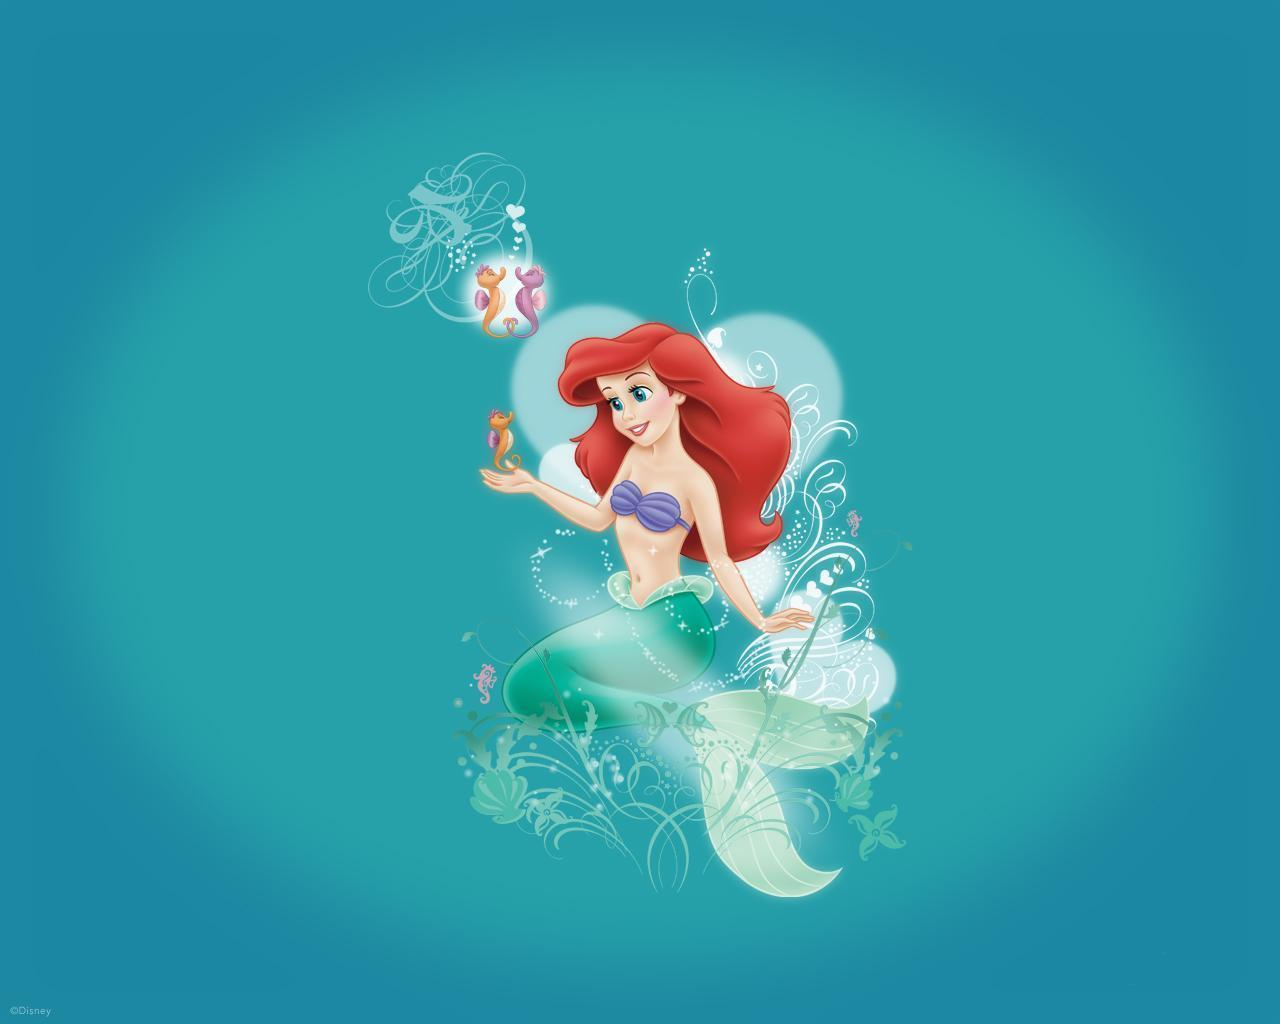 The Little Mermaid Wallpapers - Wallpaper Cave